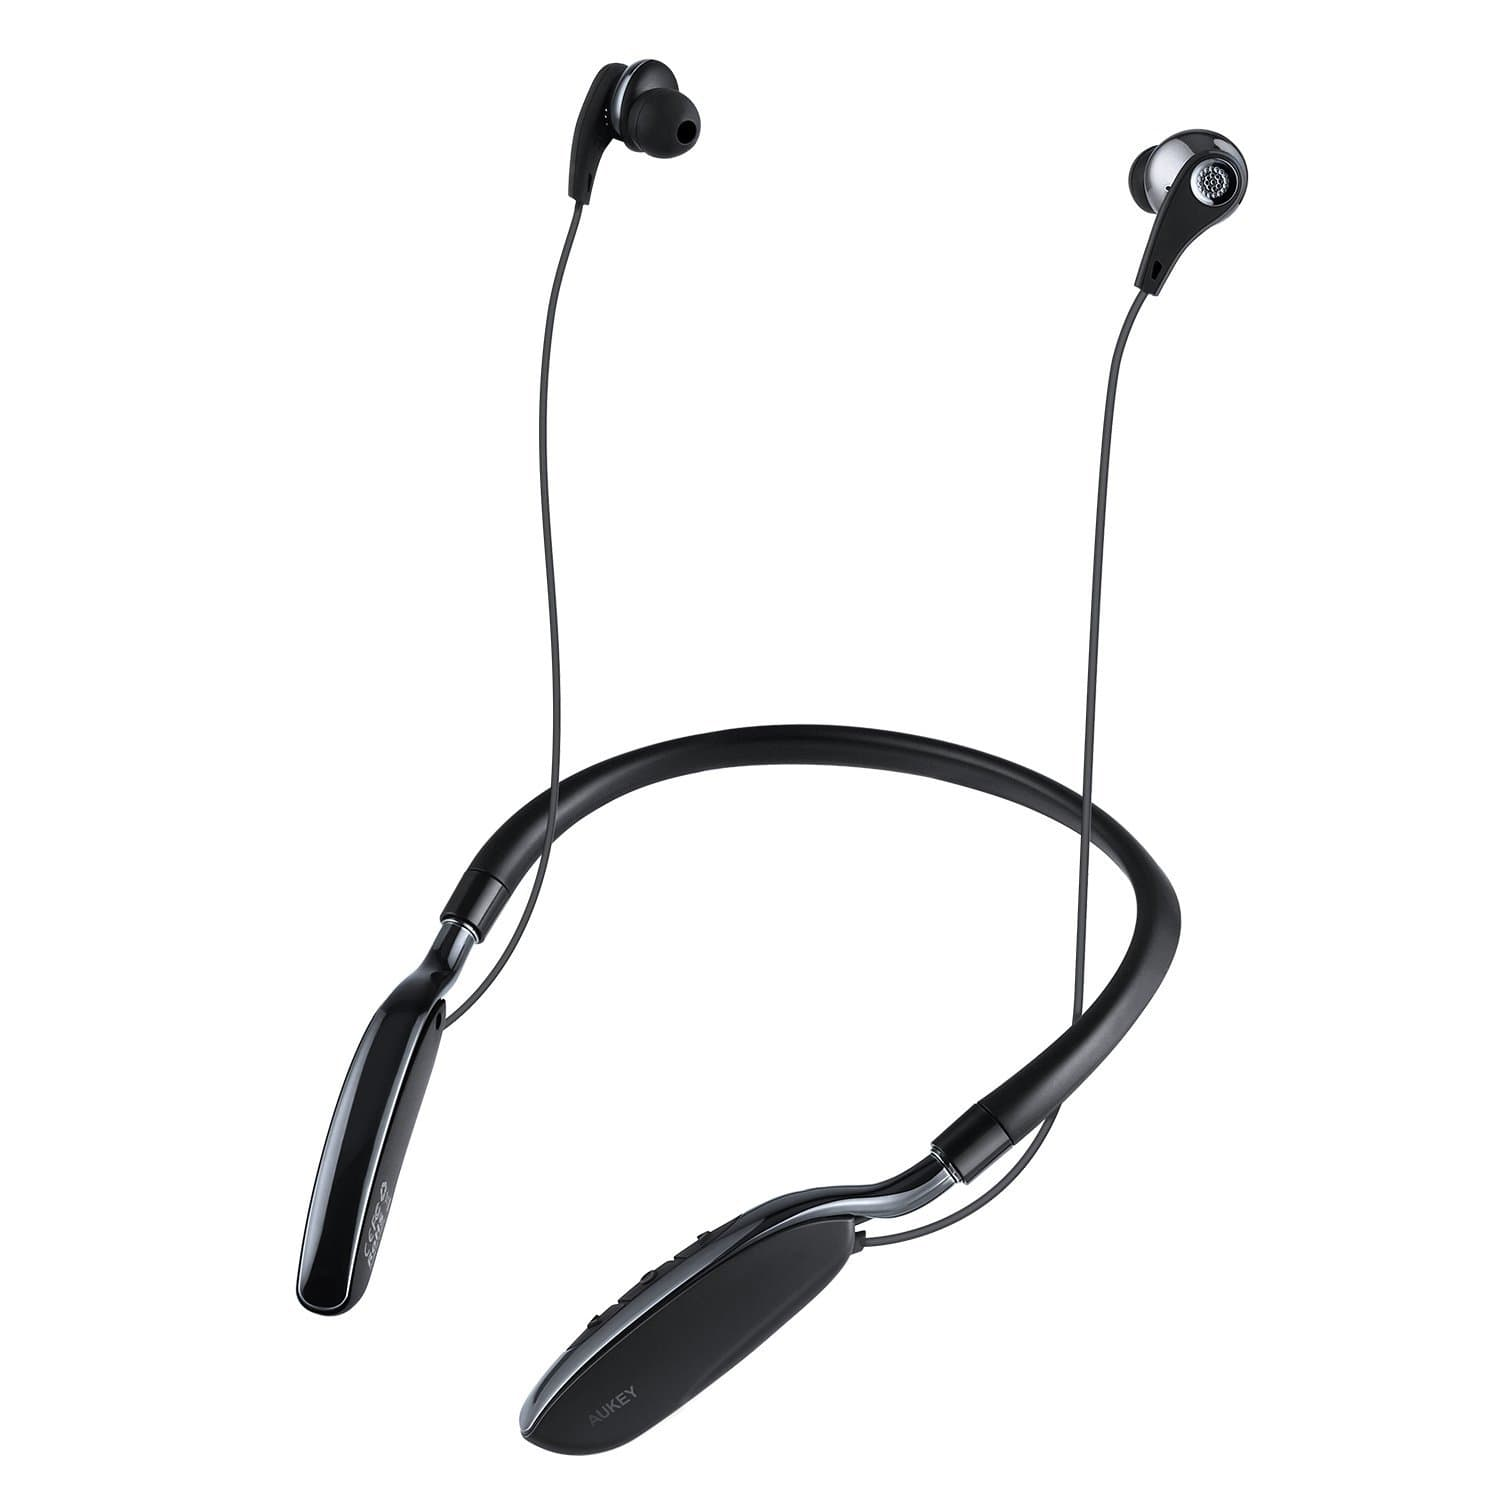 AUKEY EP-B39 Neckband Bluetooth Headset 20-Hour Playtime and Built-In Microphone - Aukey Malaysia Official Store